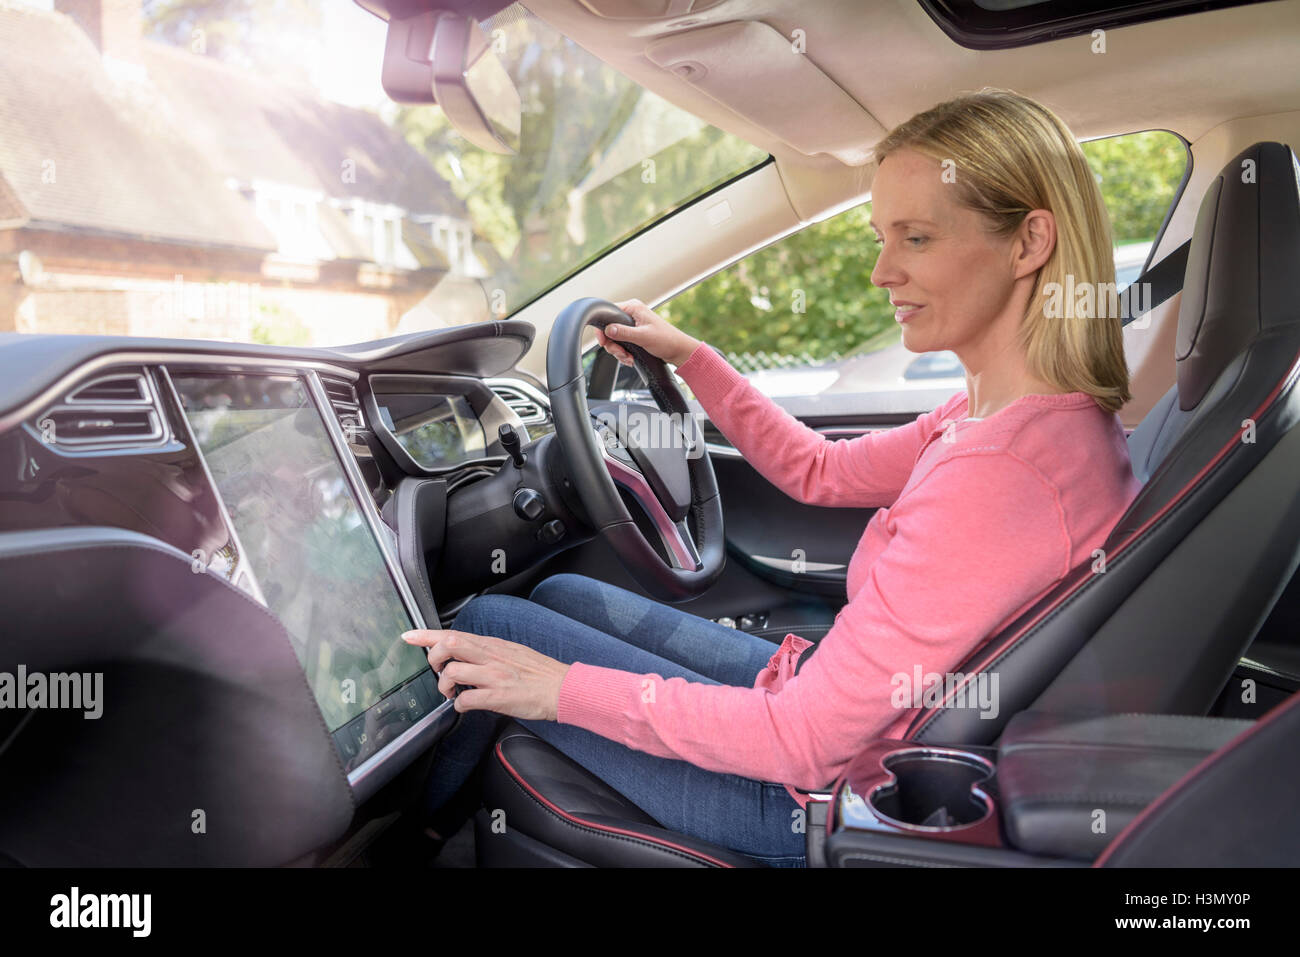 Woman using satellite navigation system in electric car - Stock Image